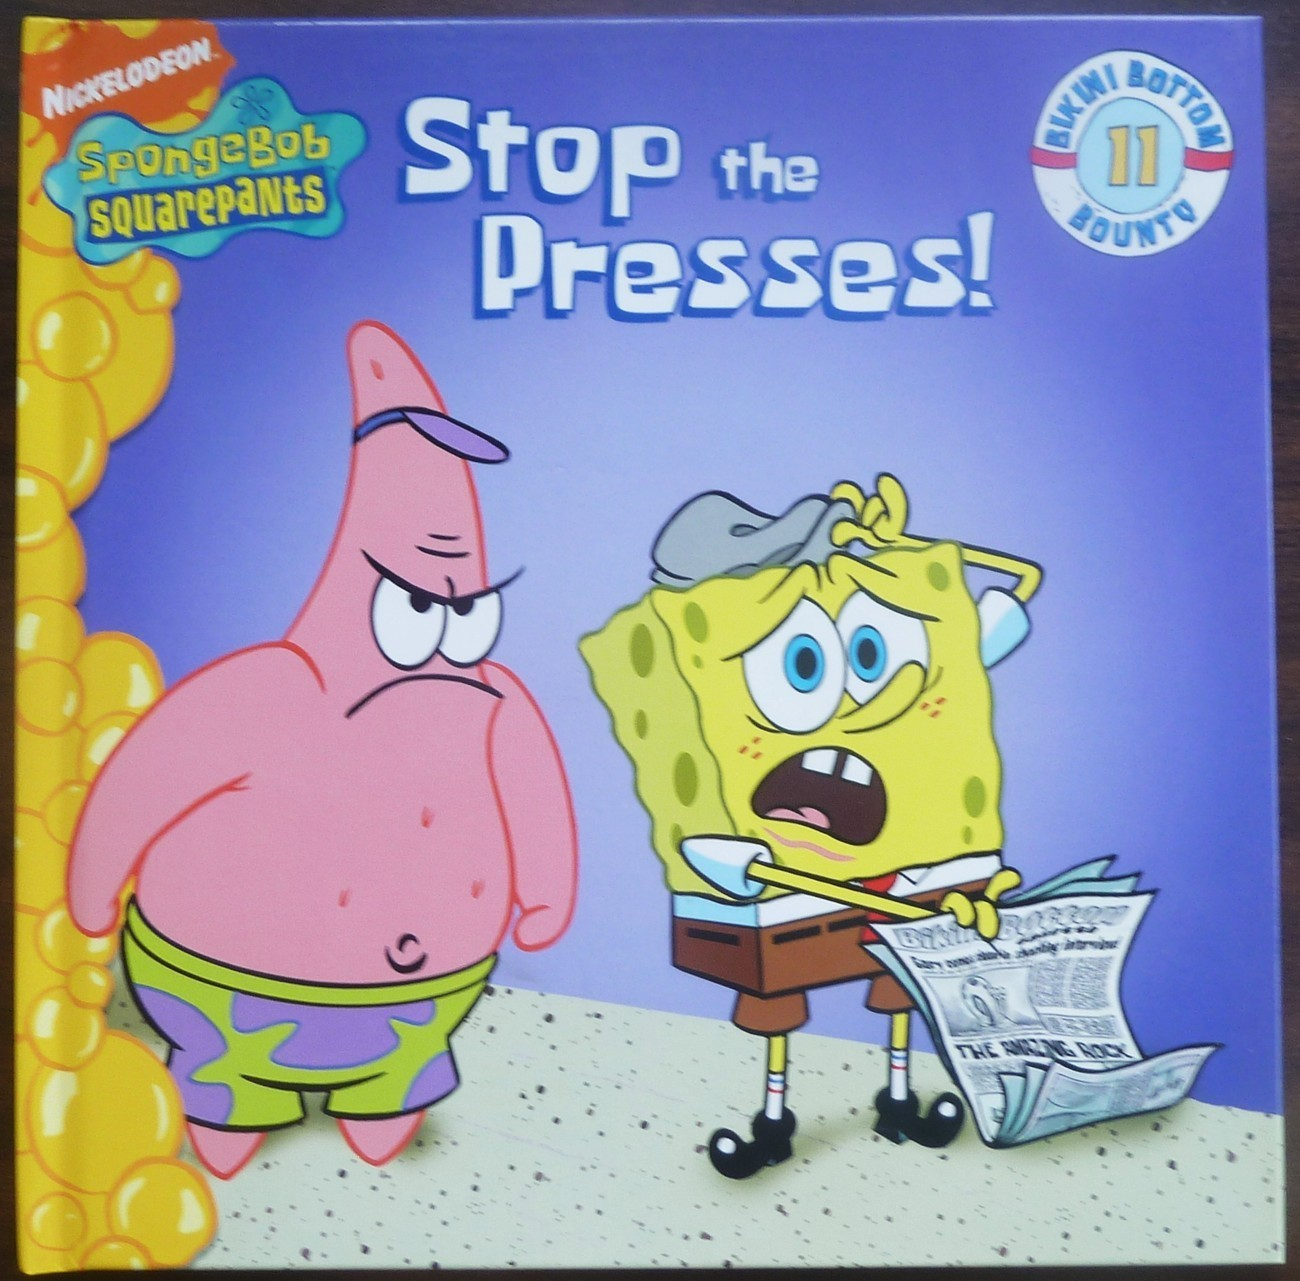 SpongeBob Squarepants Stop the Presses by Steven Banks